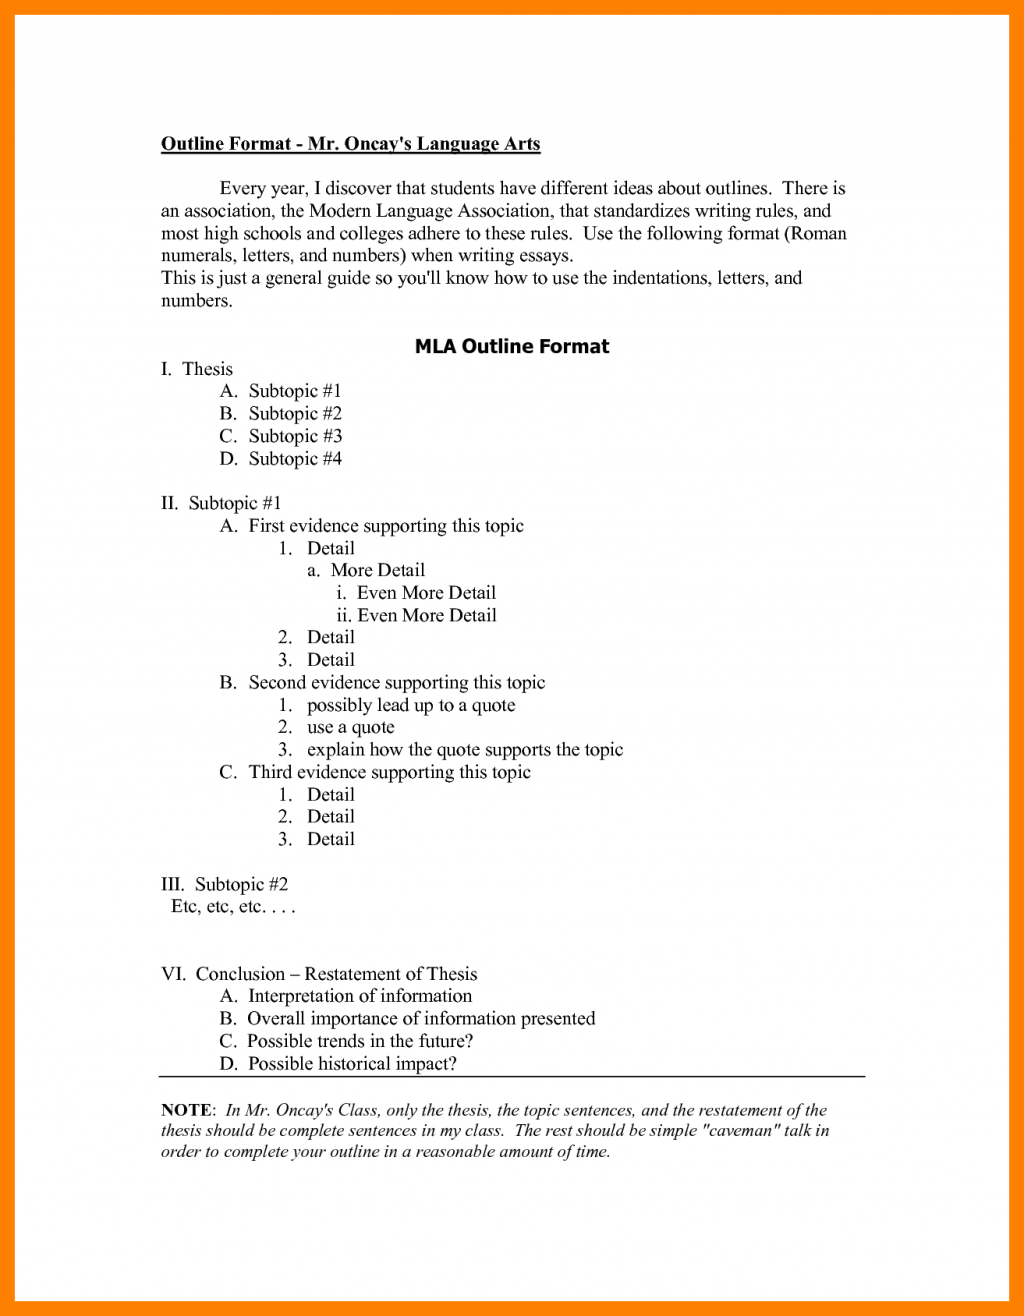 020 20research Paper Samples Mla Citation Generator Outline Daly Note Card Template Internal Citations Blank20 1024x1316 Research Format Cover Singular Page Style Title Example With Full